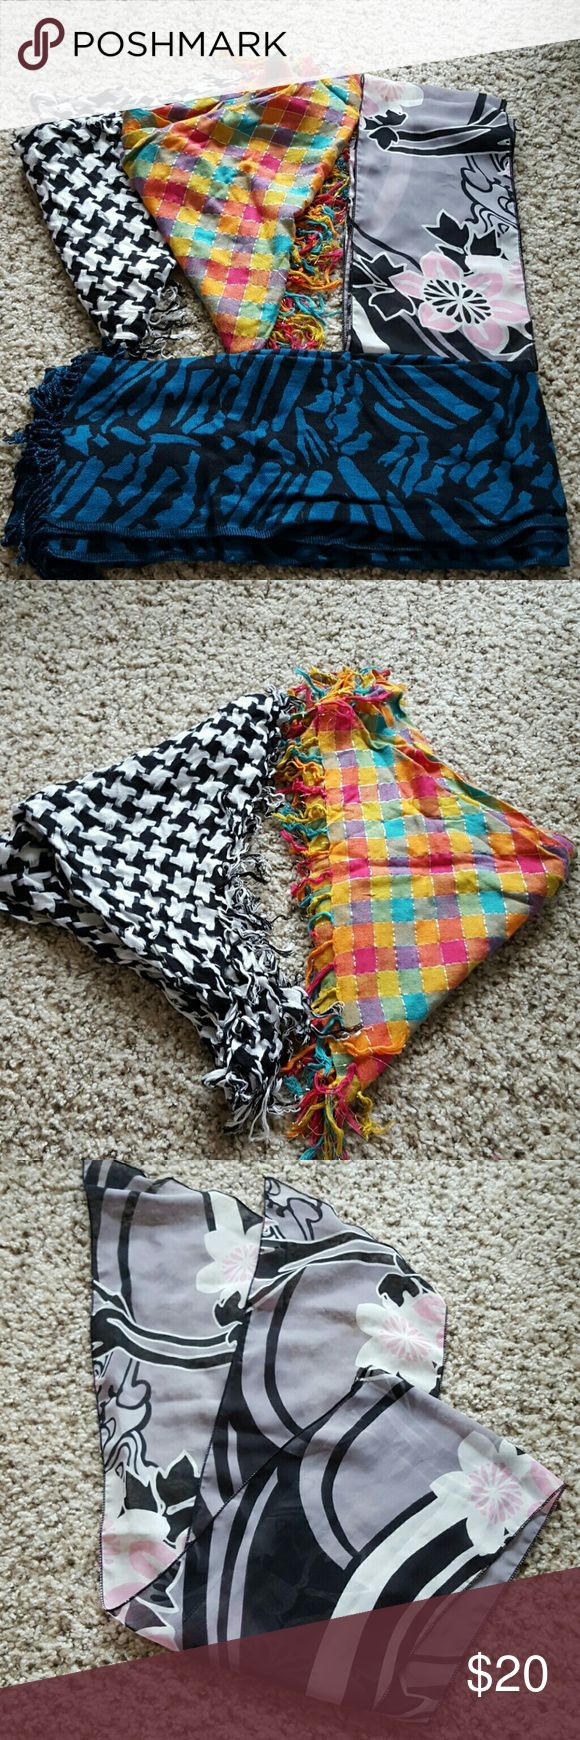 4 Scarves 1 black & white houdstooth triangle scarf with tassles, 1 multicolored triangle scarf with tassles and silver threading, 1 floral neck scarf with pink, gray and black, 1 teal and black zebra print long scarf with tassles Accessories Scarves & Wraps